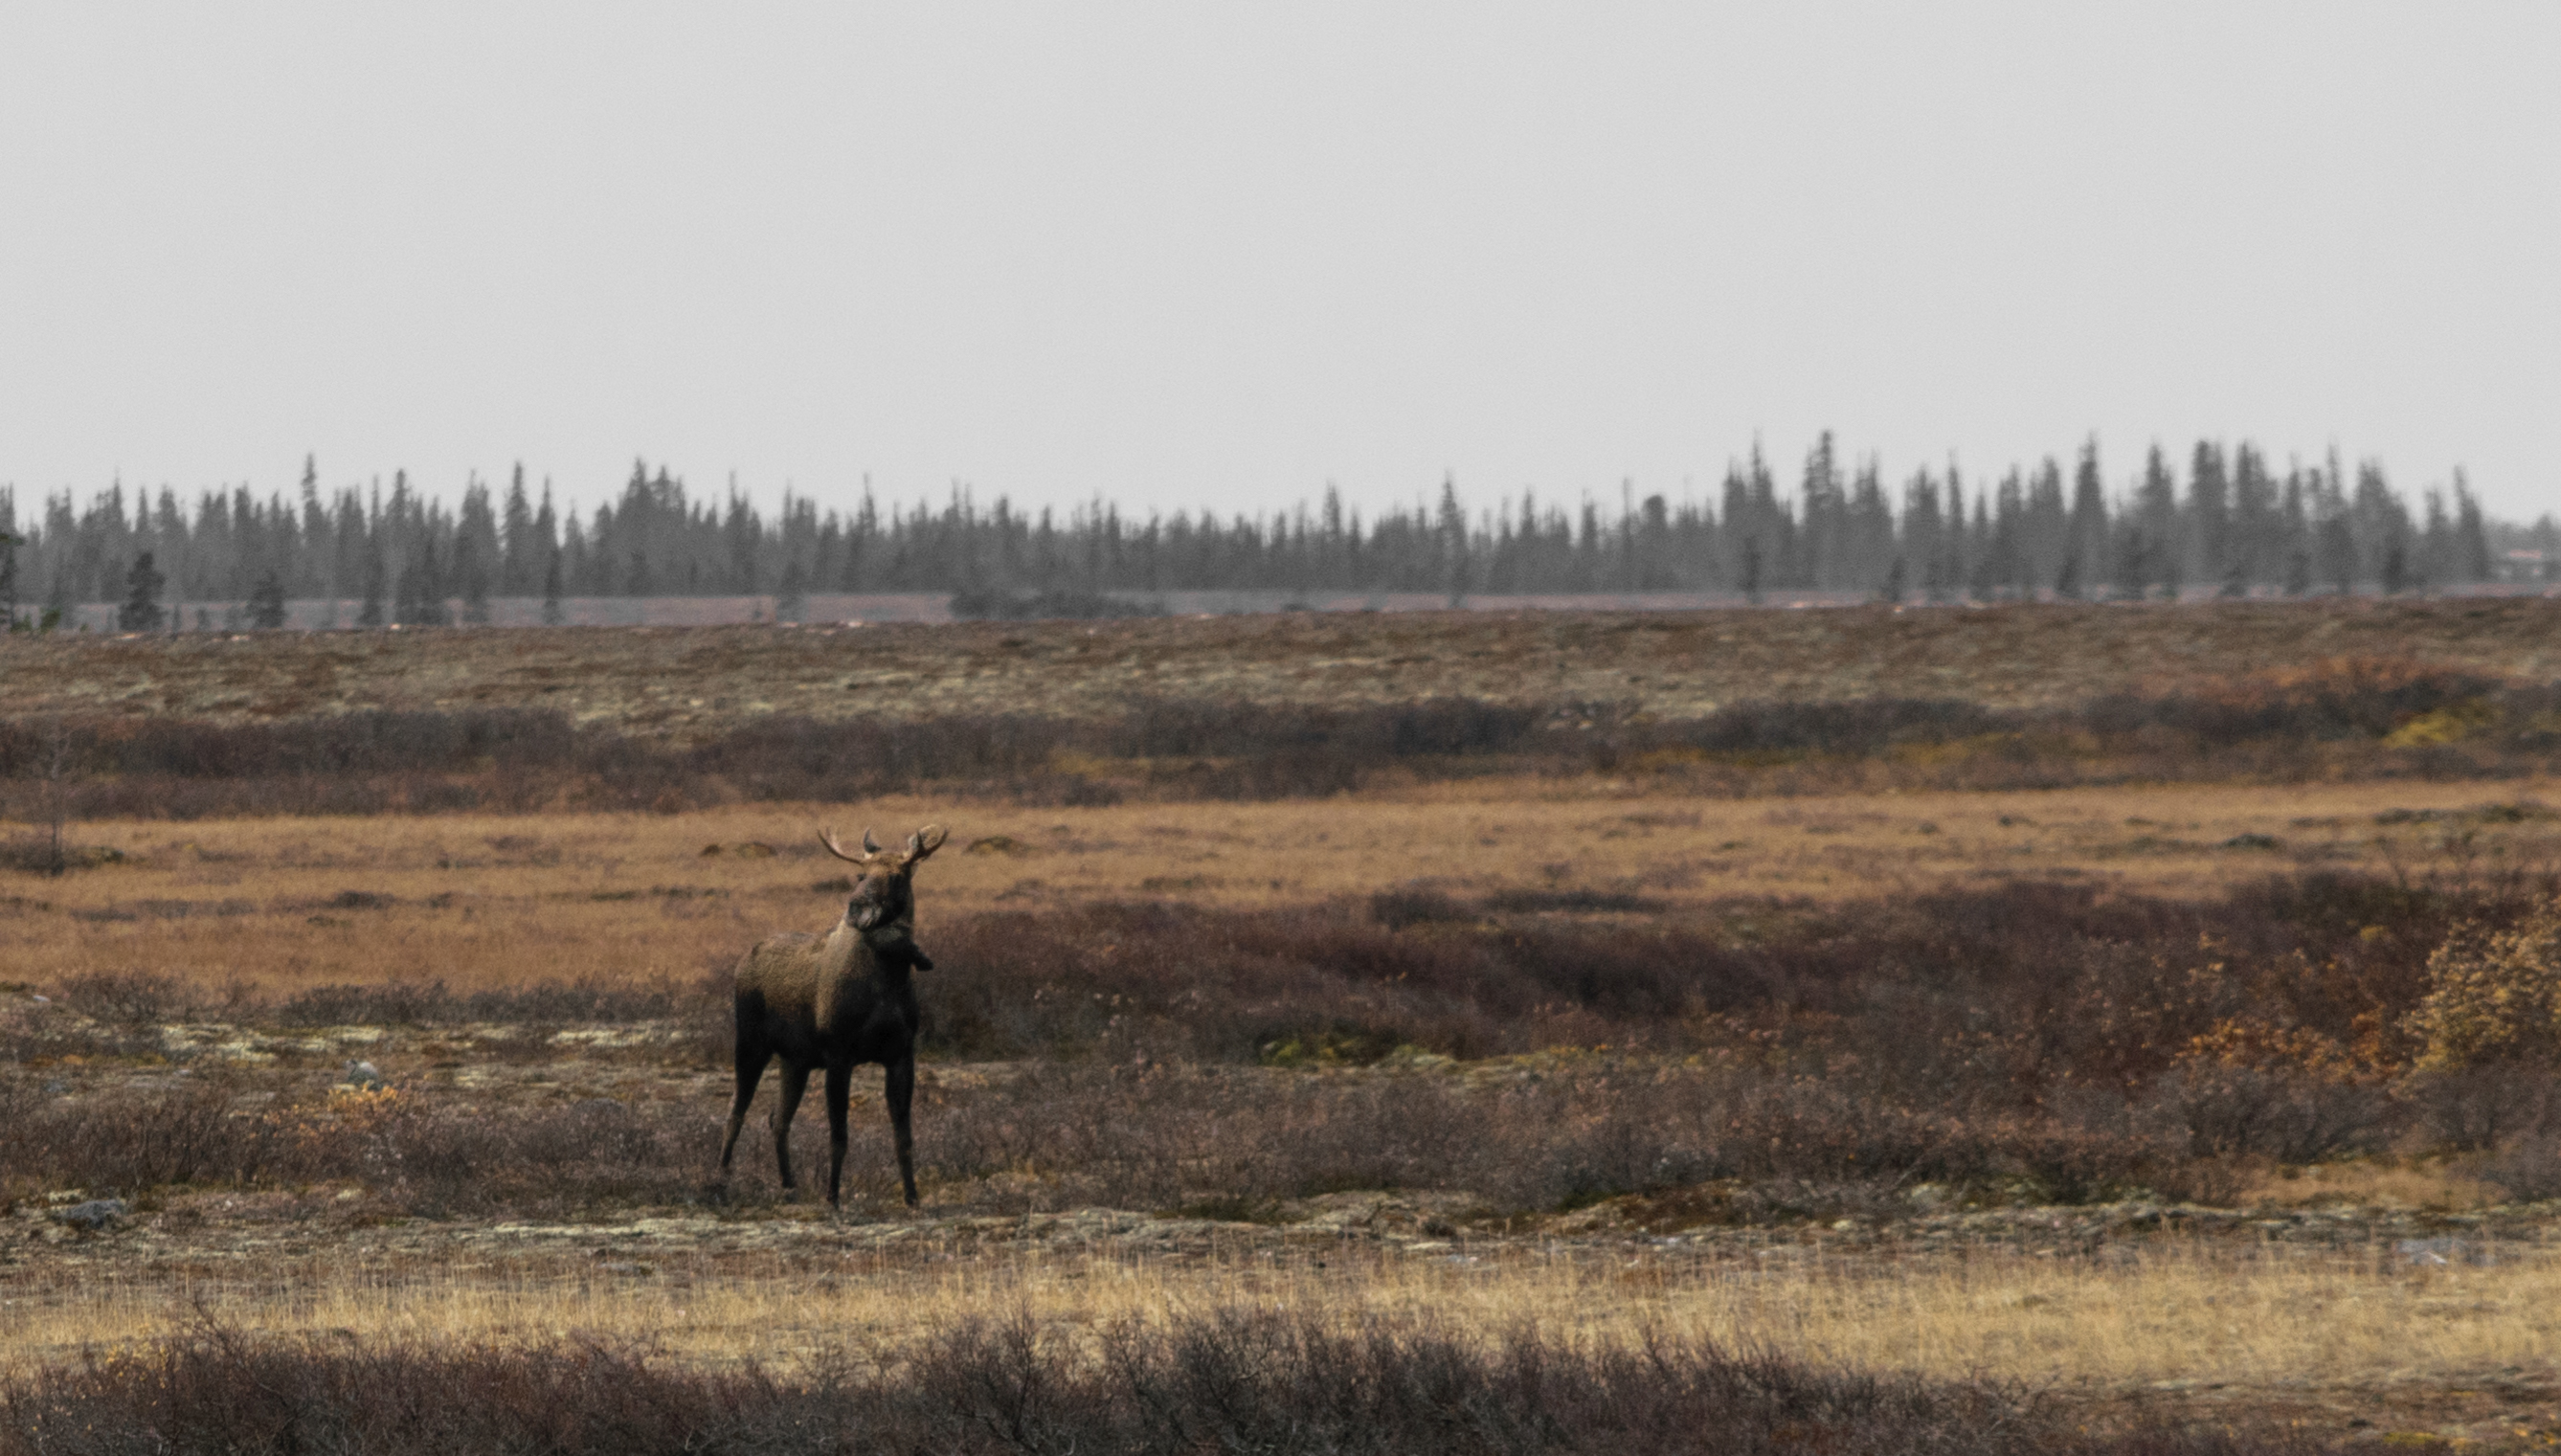 According to our Parks Canada guide, moose aren't common during this time of year.